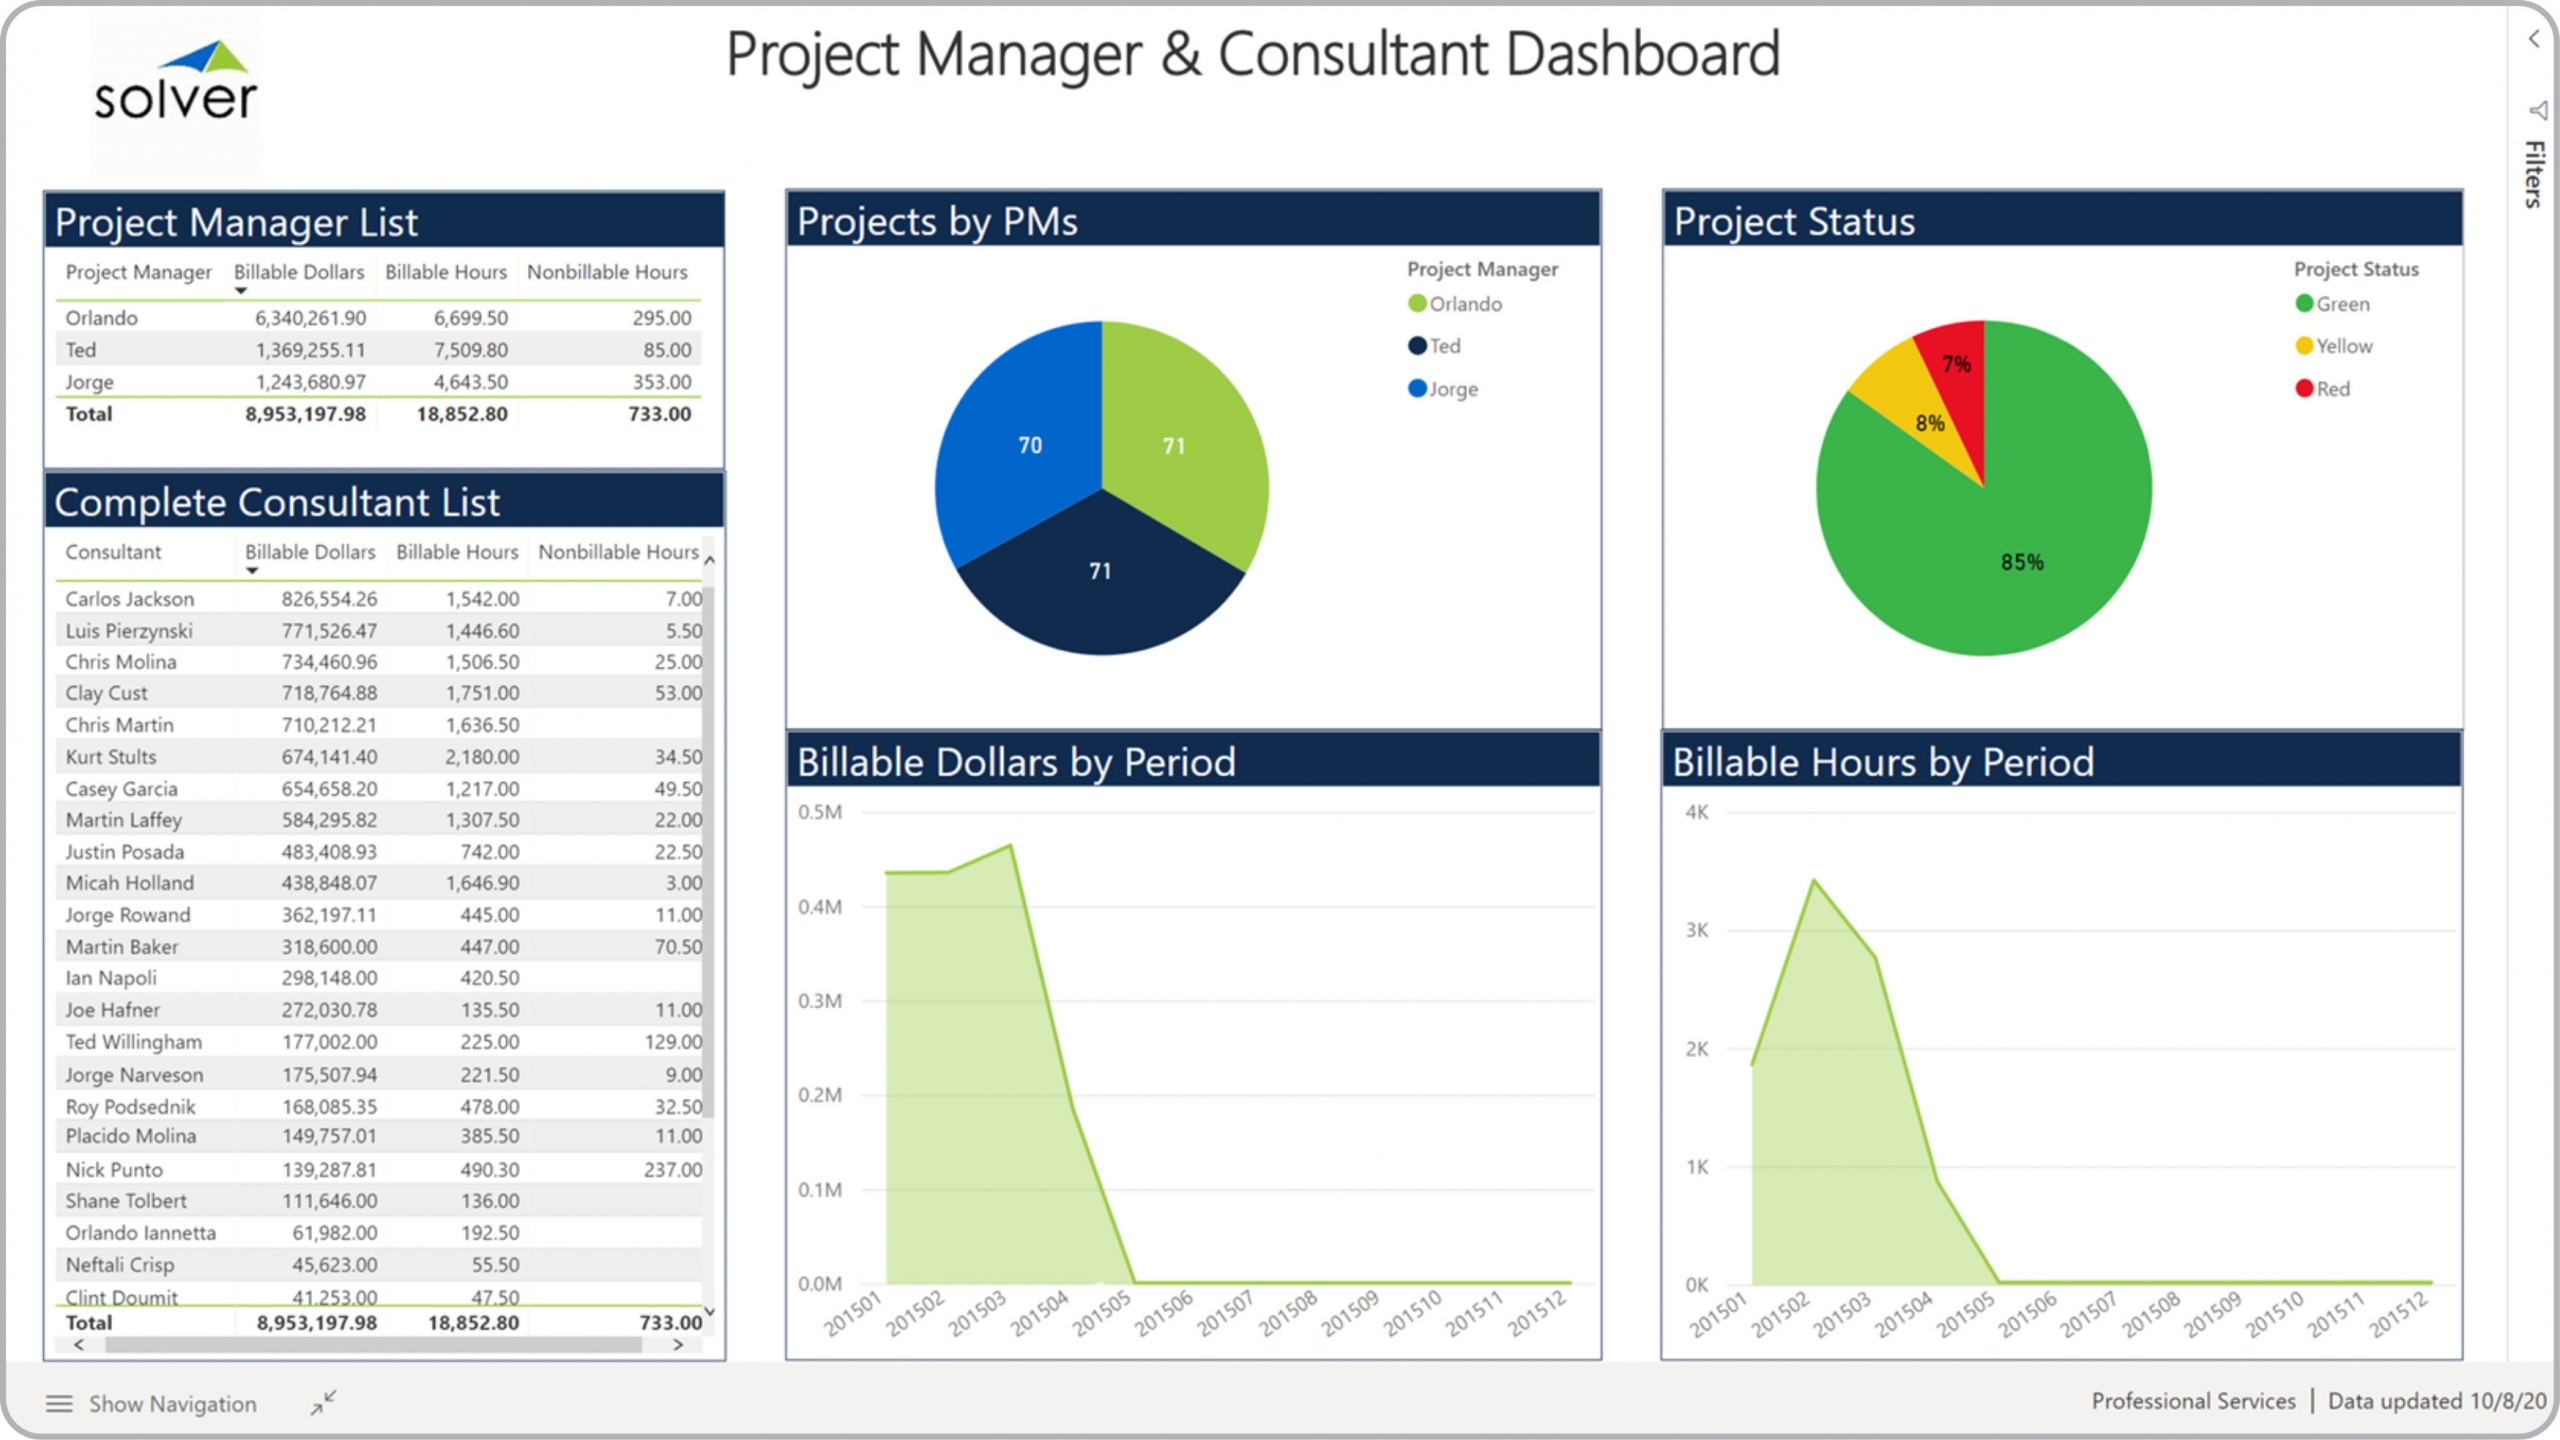 Example of a Project Dashboard for a Professional Services Company